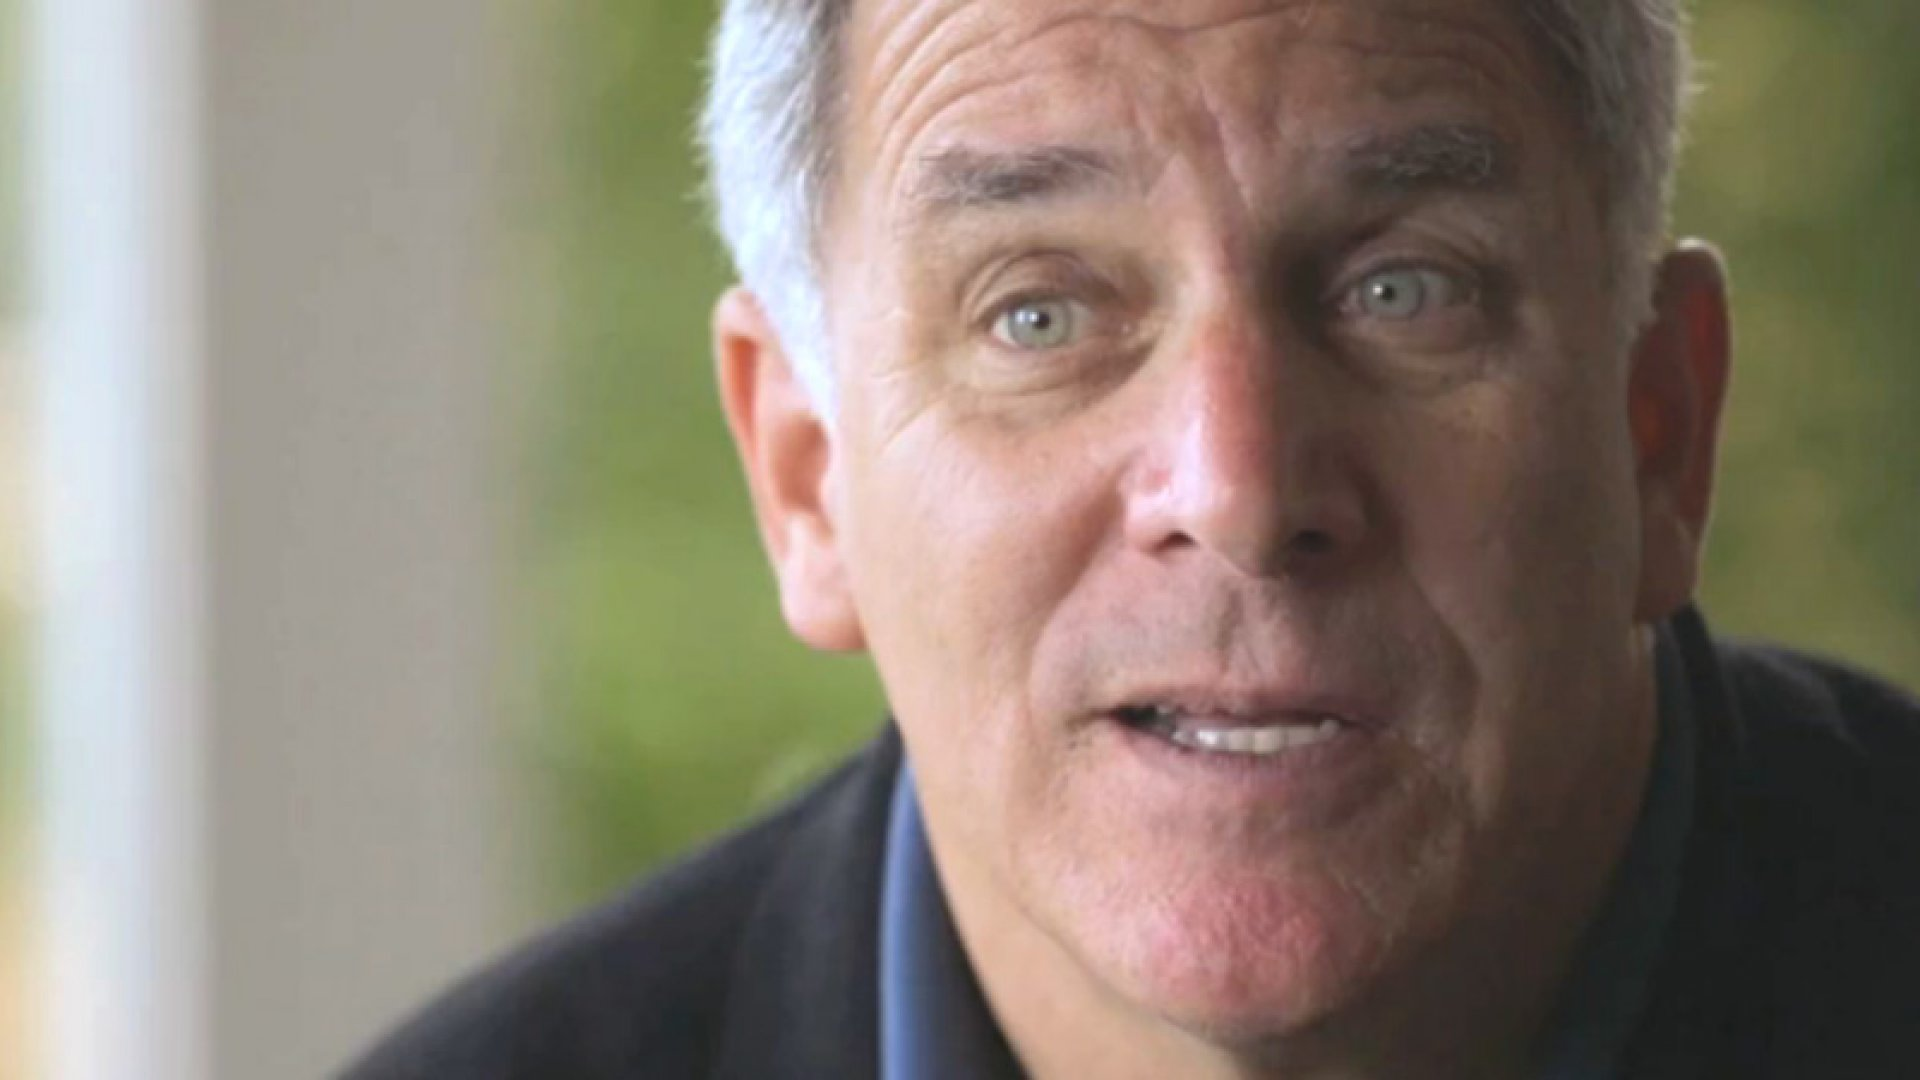 Stonyfield CEO Gary Hirshberg on What's Driving the Food Revolution